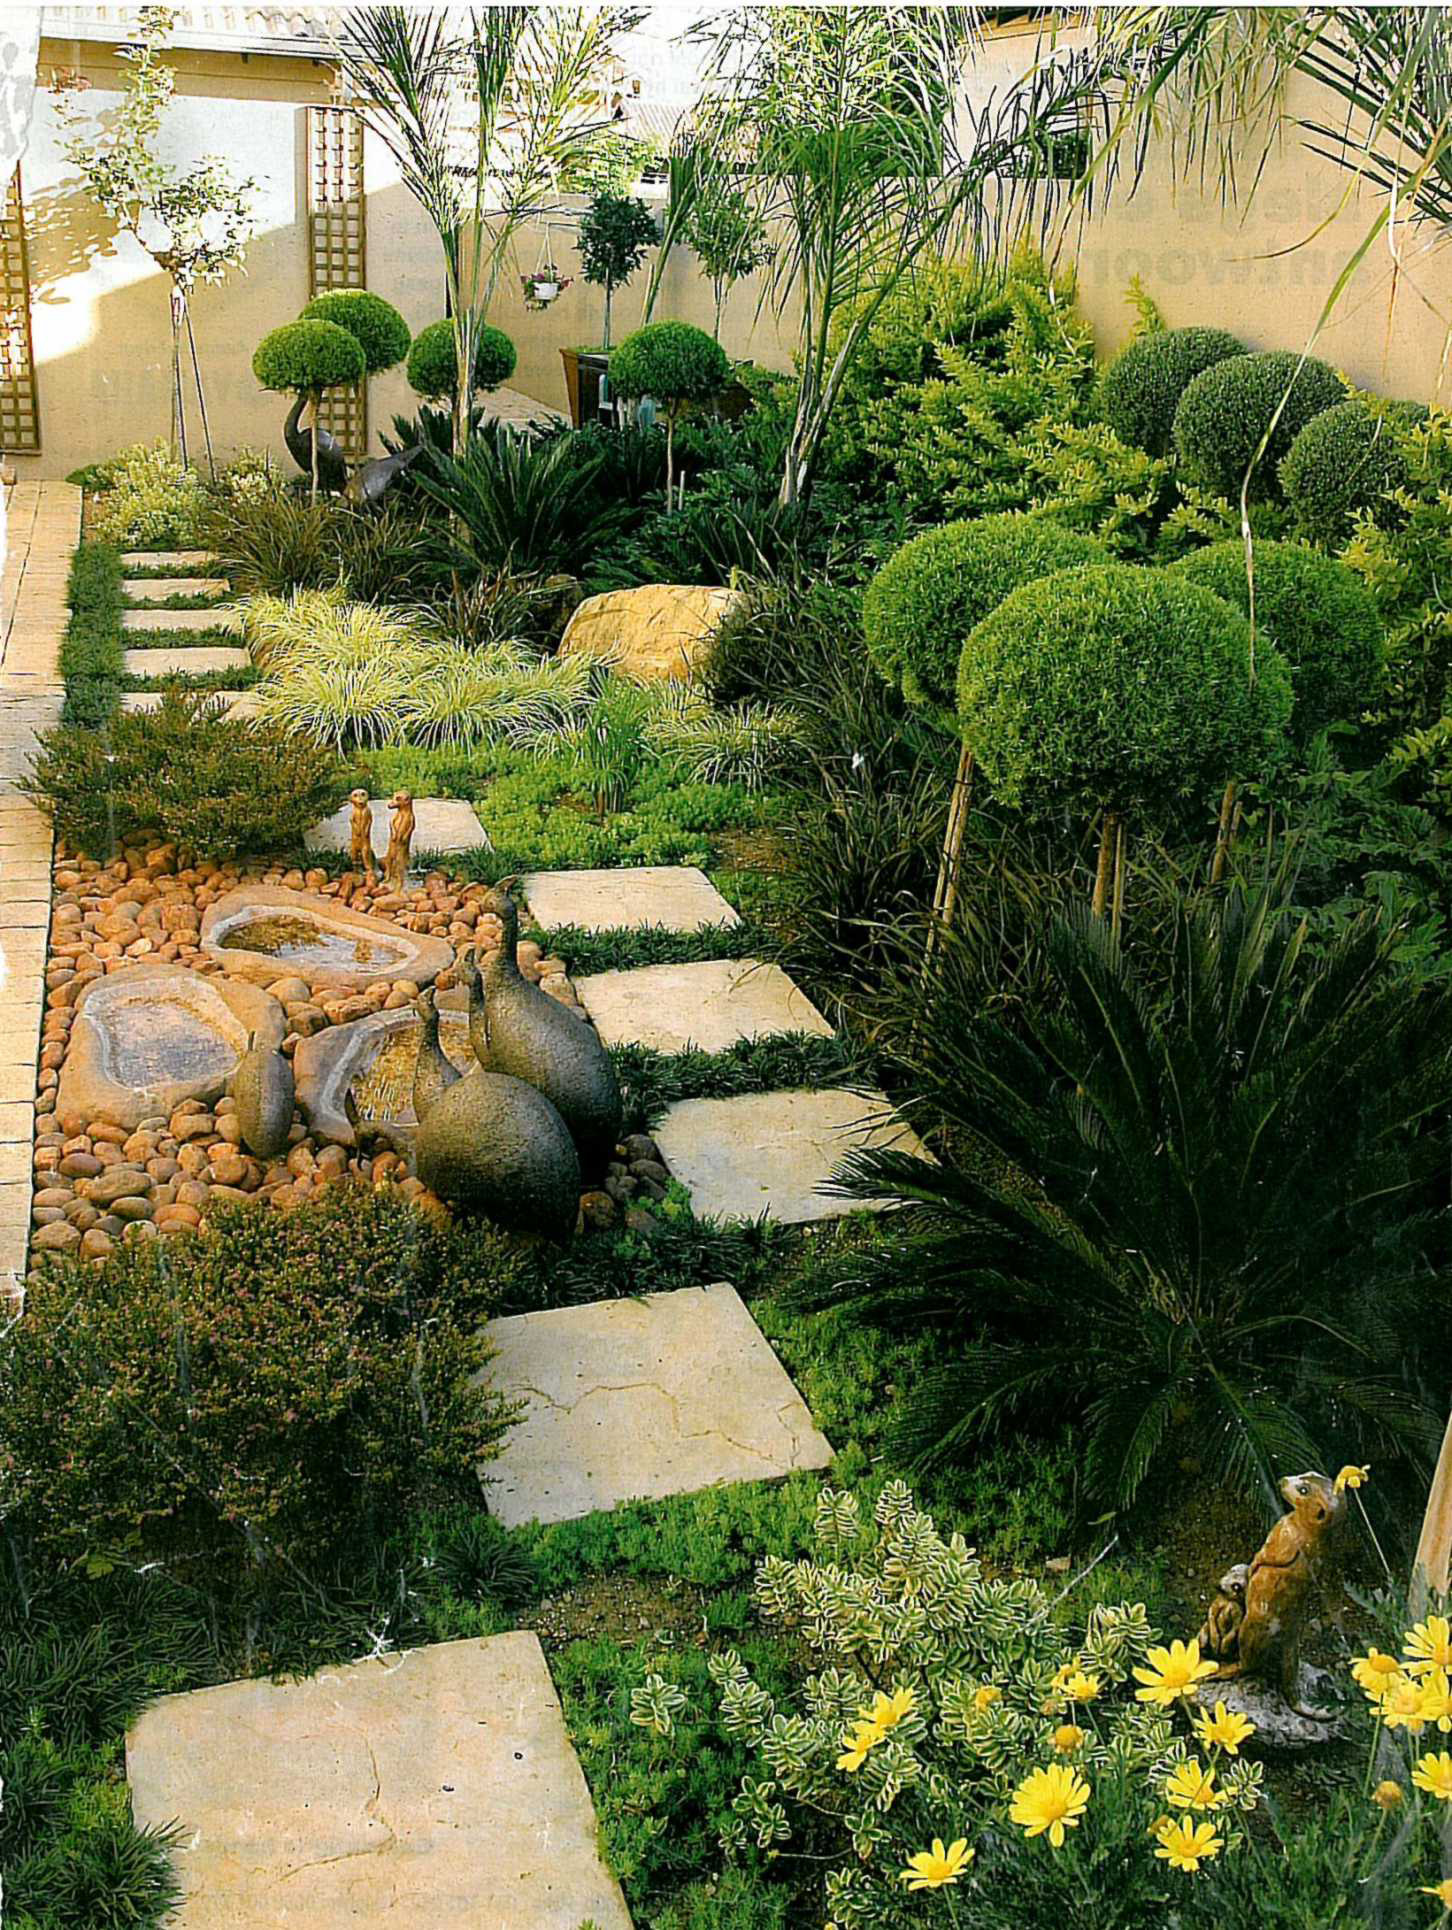 Water wise garden designs south africa front garden for Garden designs in south africa